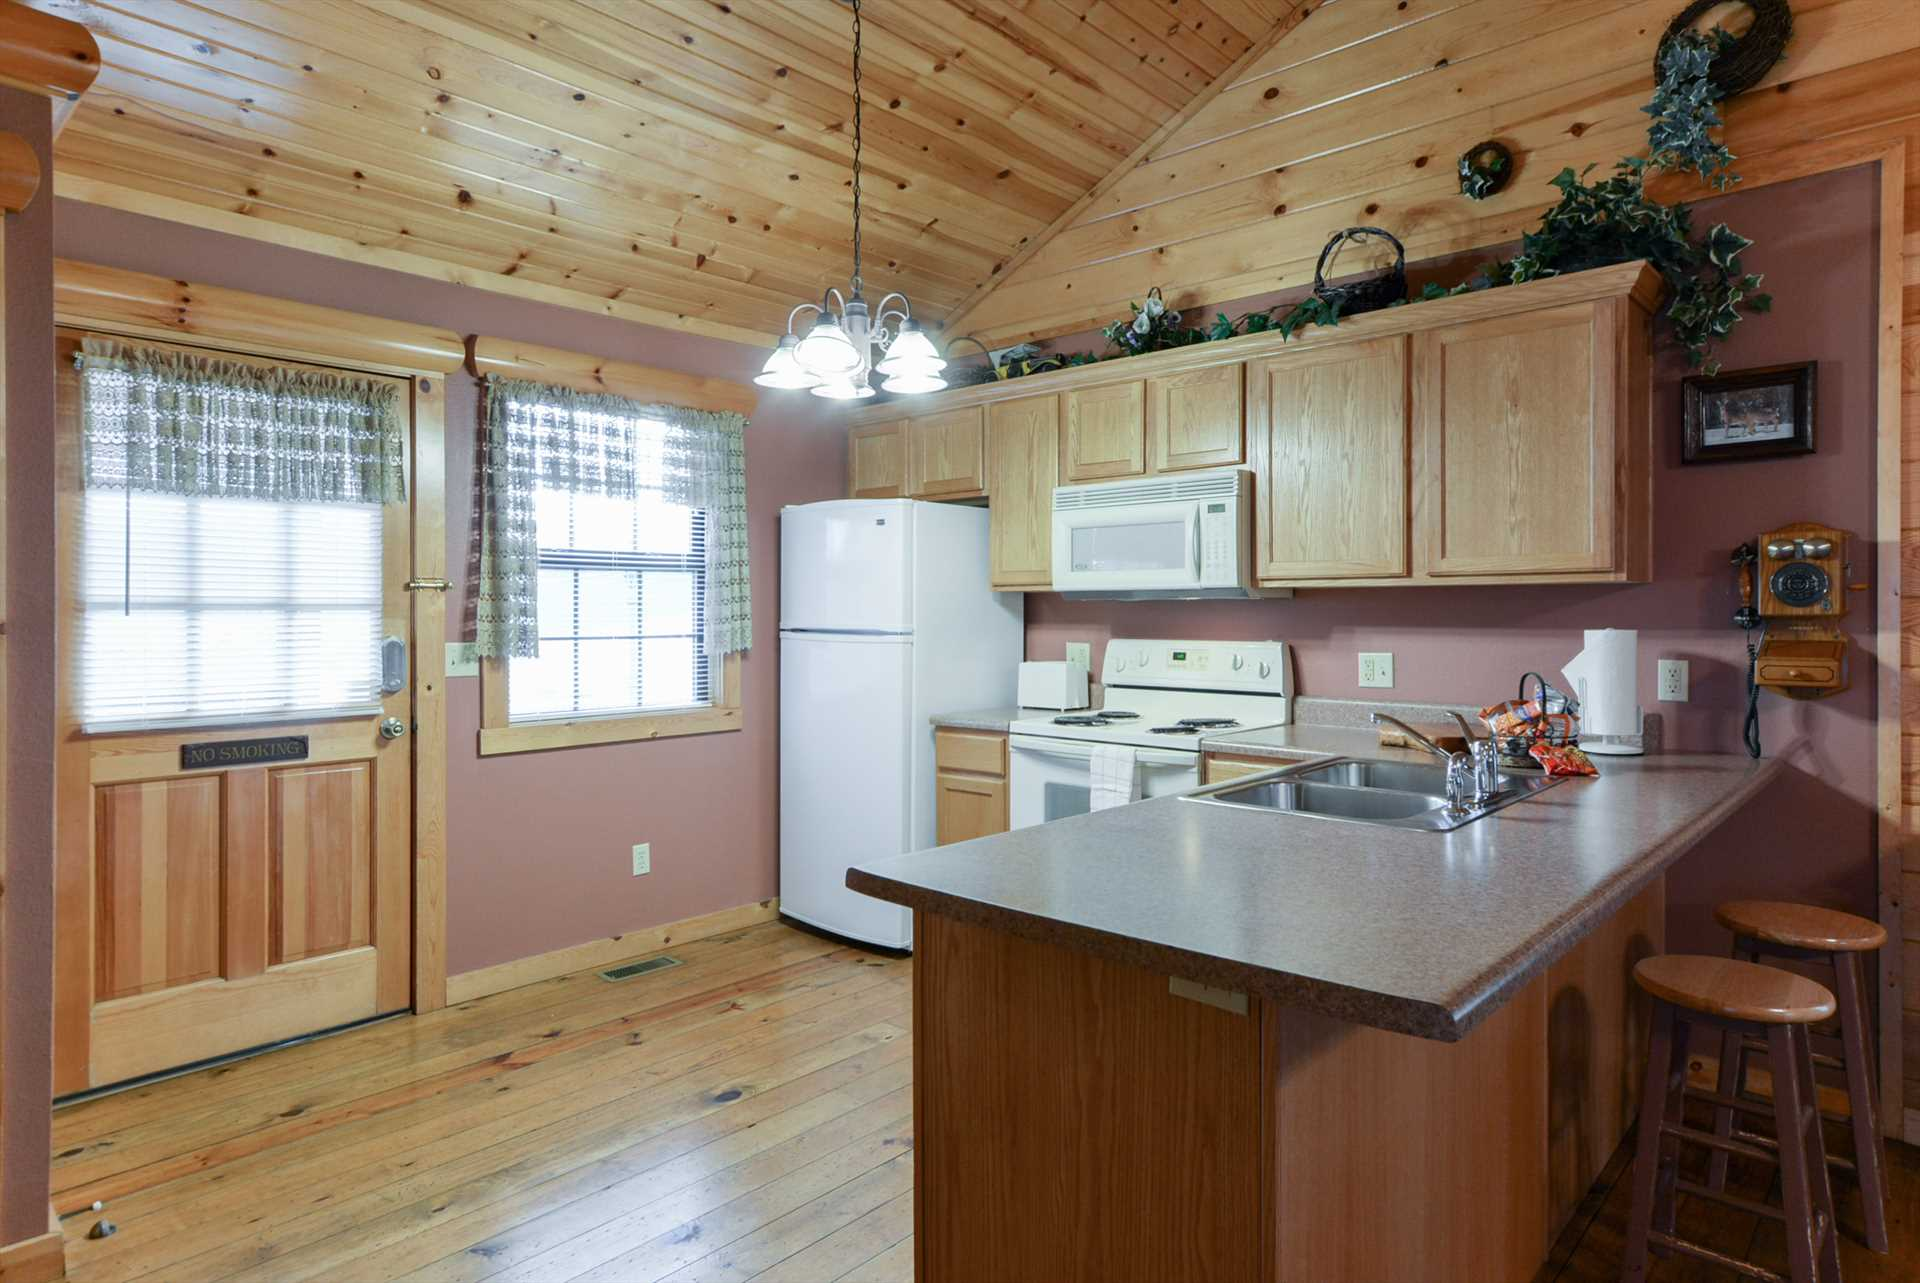 The kitchen includes full-size appliances and plenty of coun